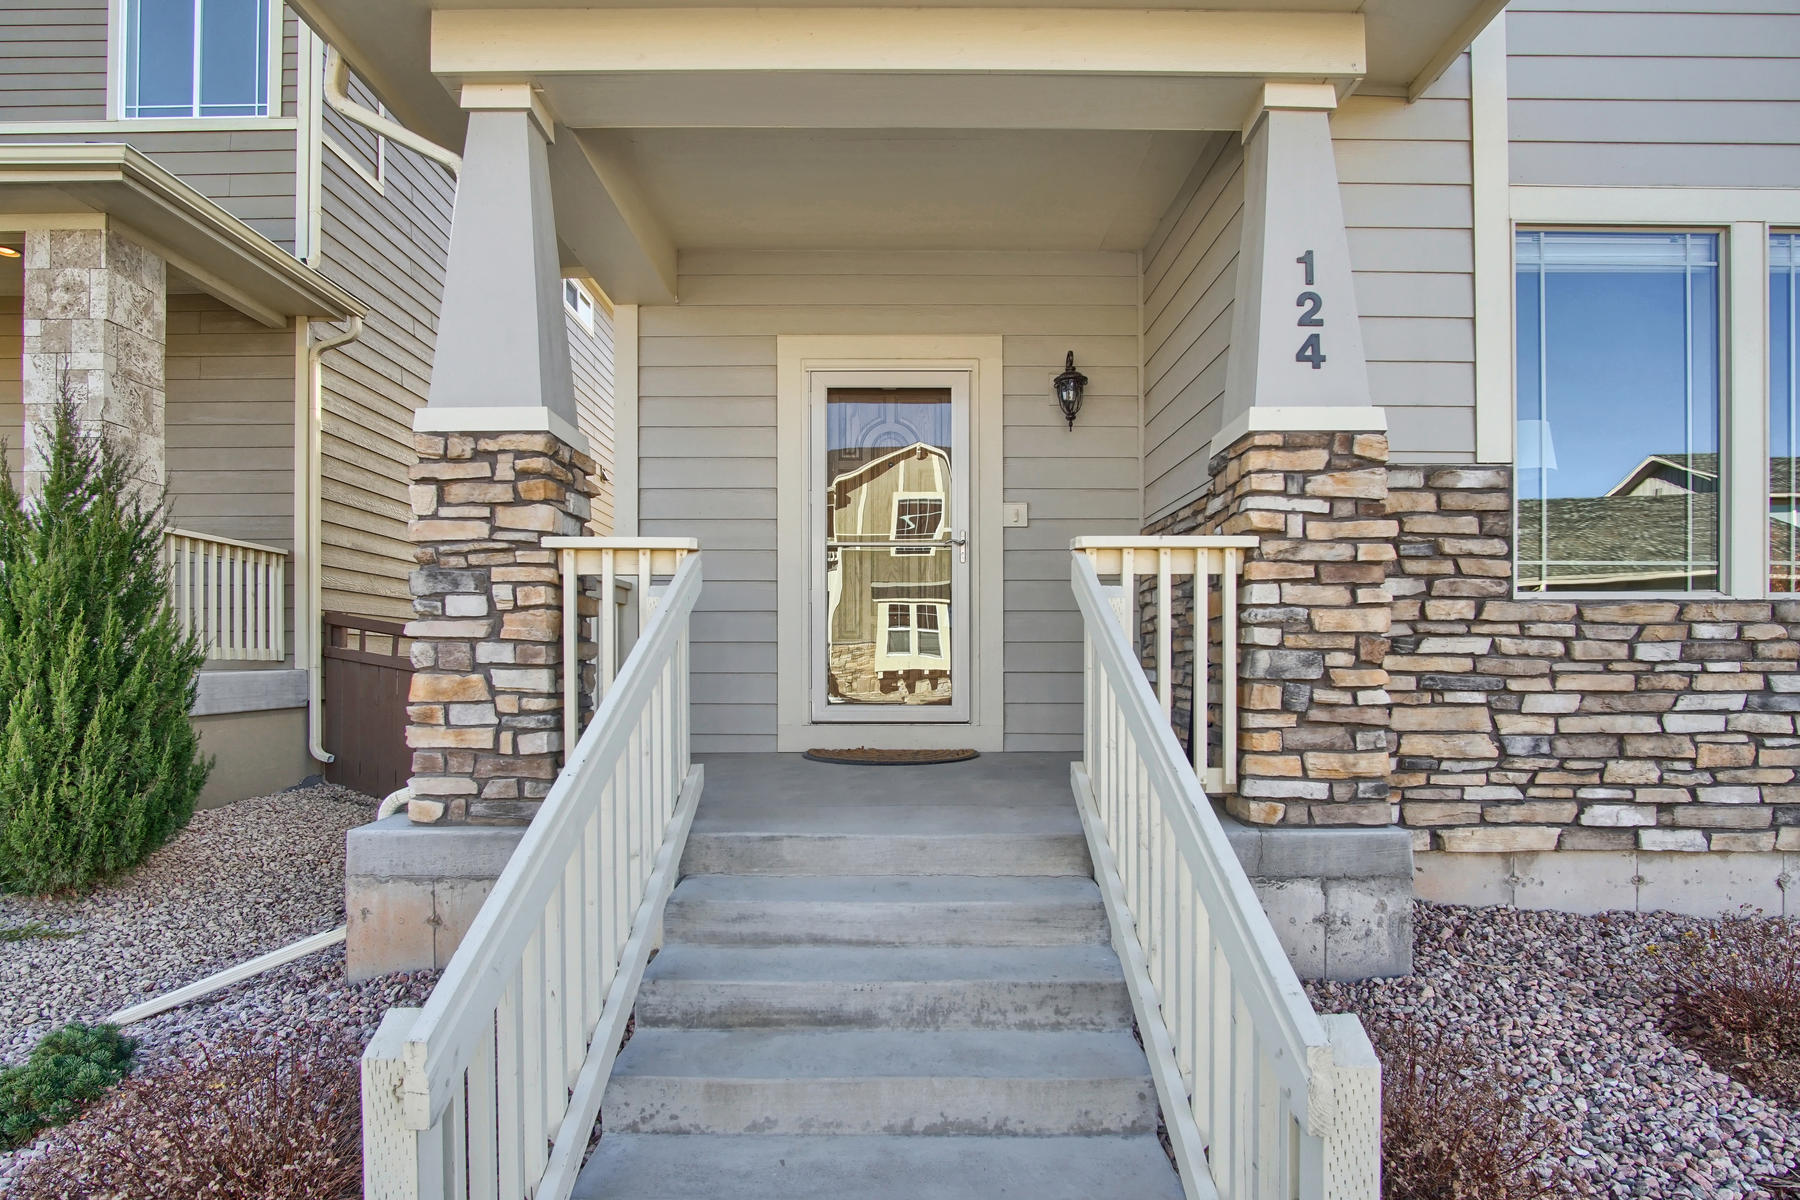 Single Family Home for Active at Come experience the unique connectivity and amenities of Gold Hill Mesa! 124 S Favorite St Colorado Springs, Colorado 80905 United States